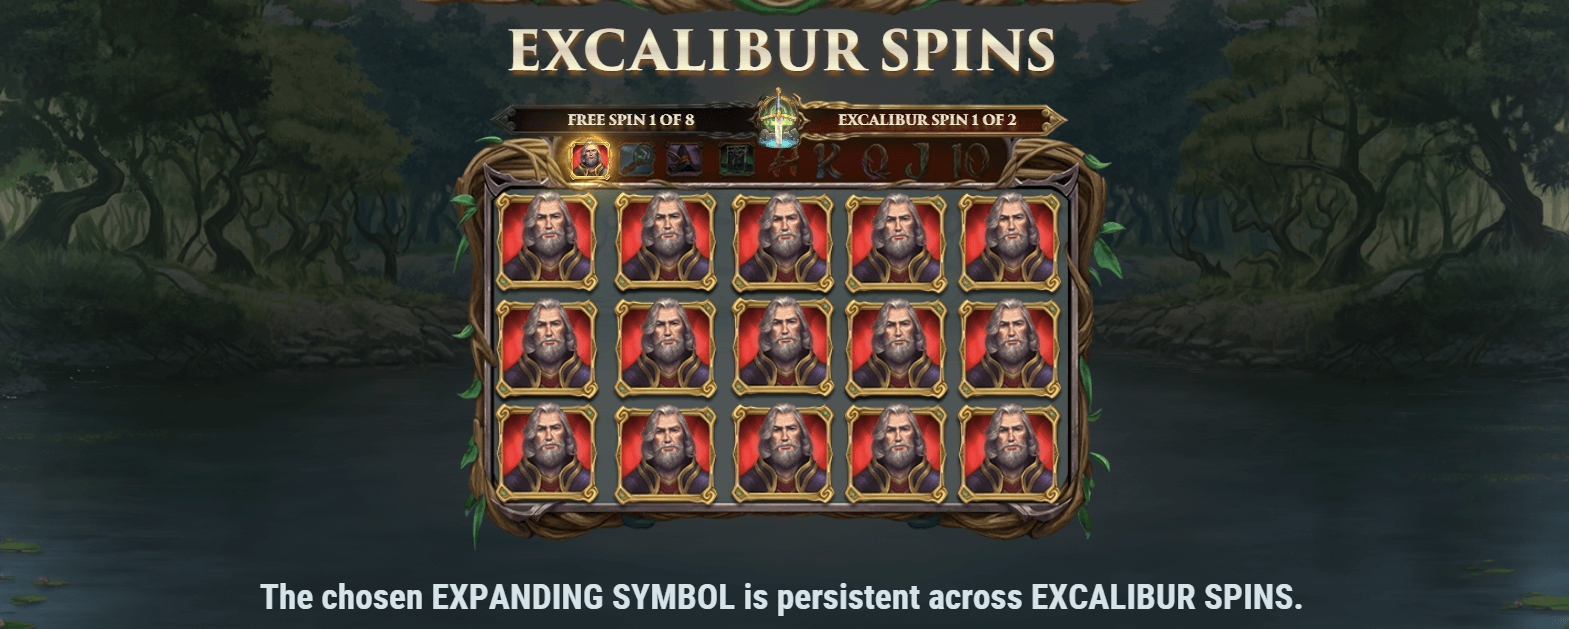 Excalibur Spins